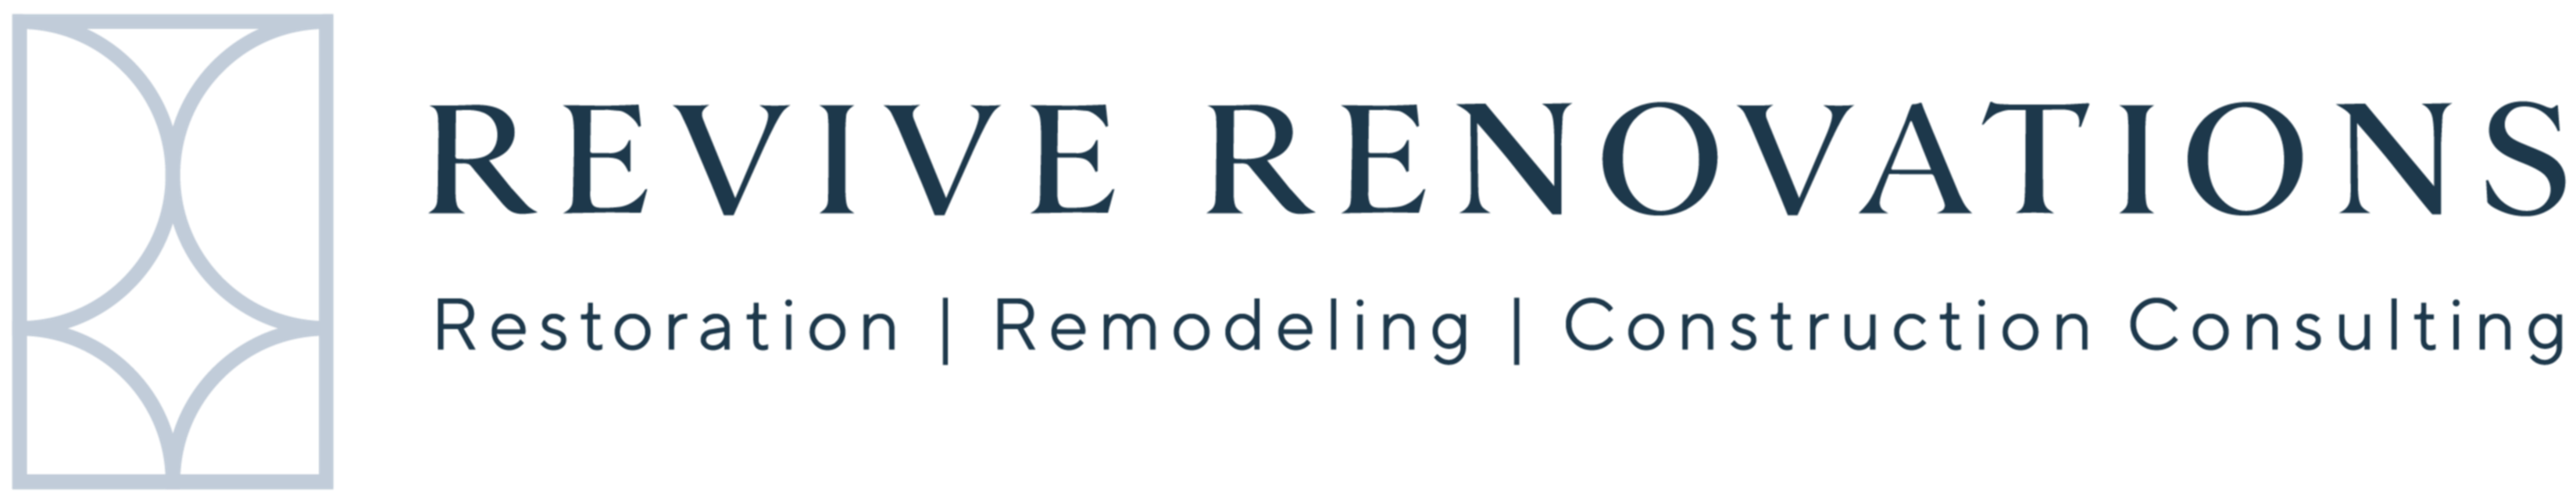 Revive Renovations H Logo Sky & Navy Transp BG-01-1-1-1-1